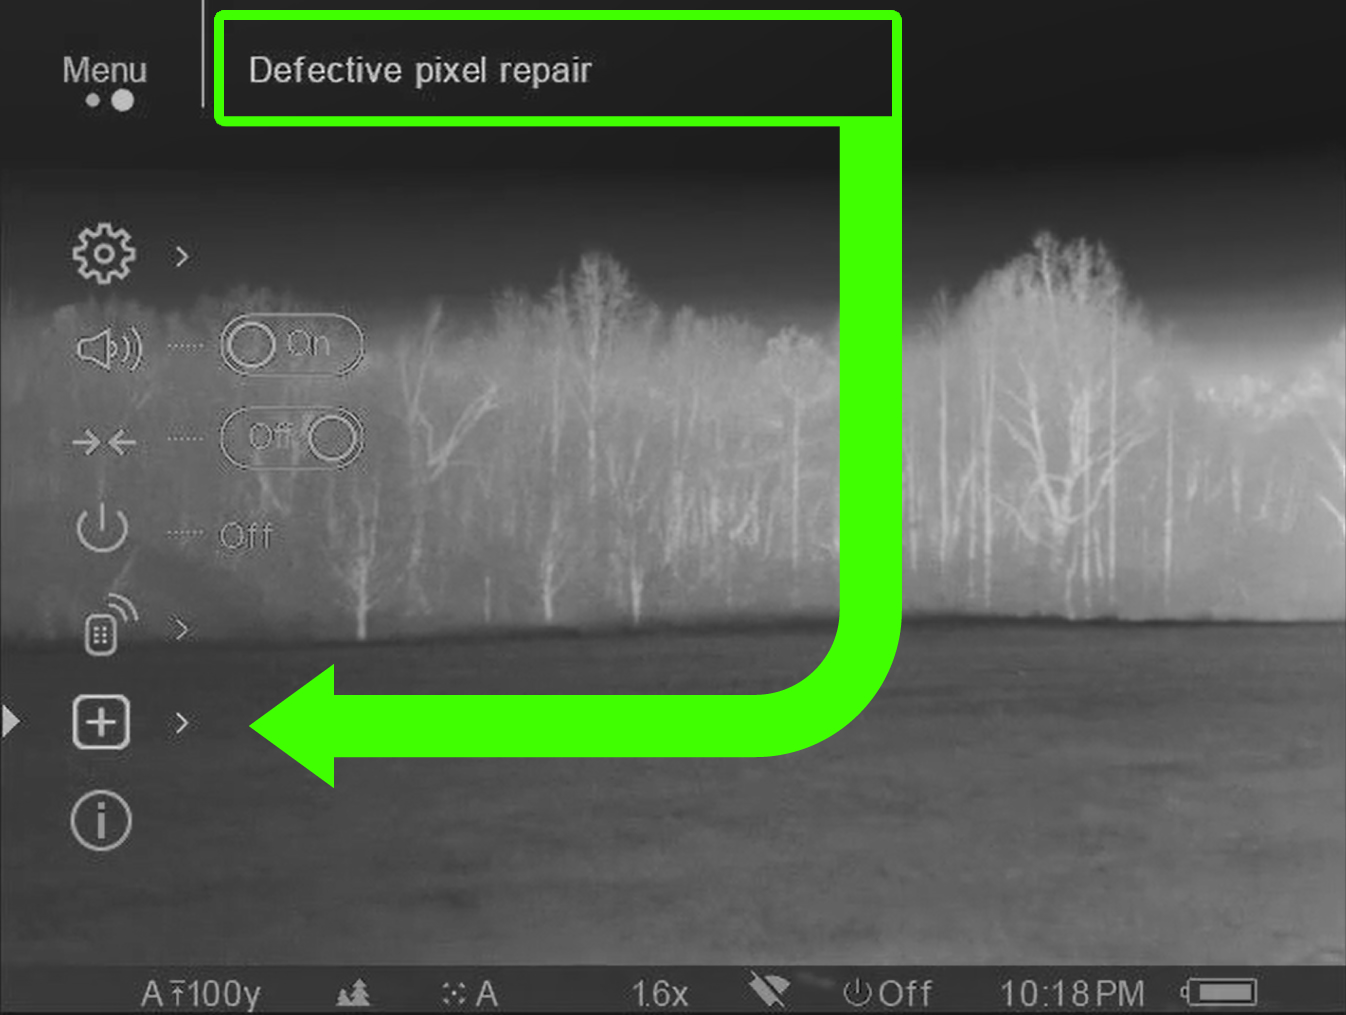 Screenshot of the Defective Pixel Repair menu option in a Pulsar Trail XP-50 Thermal Scope